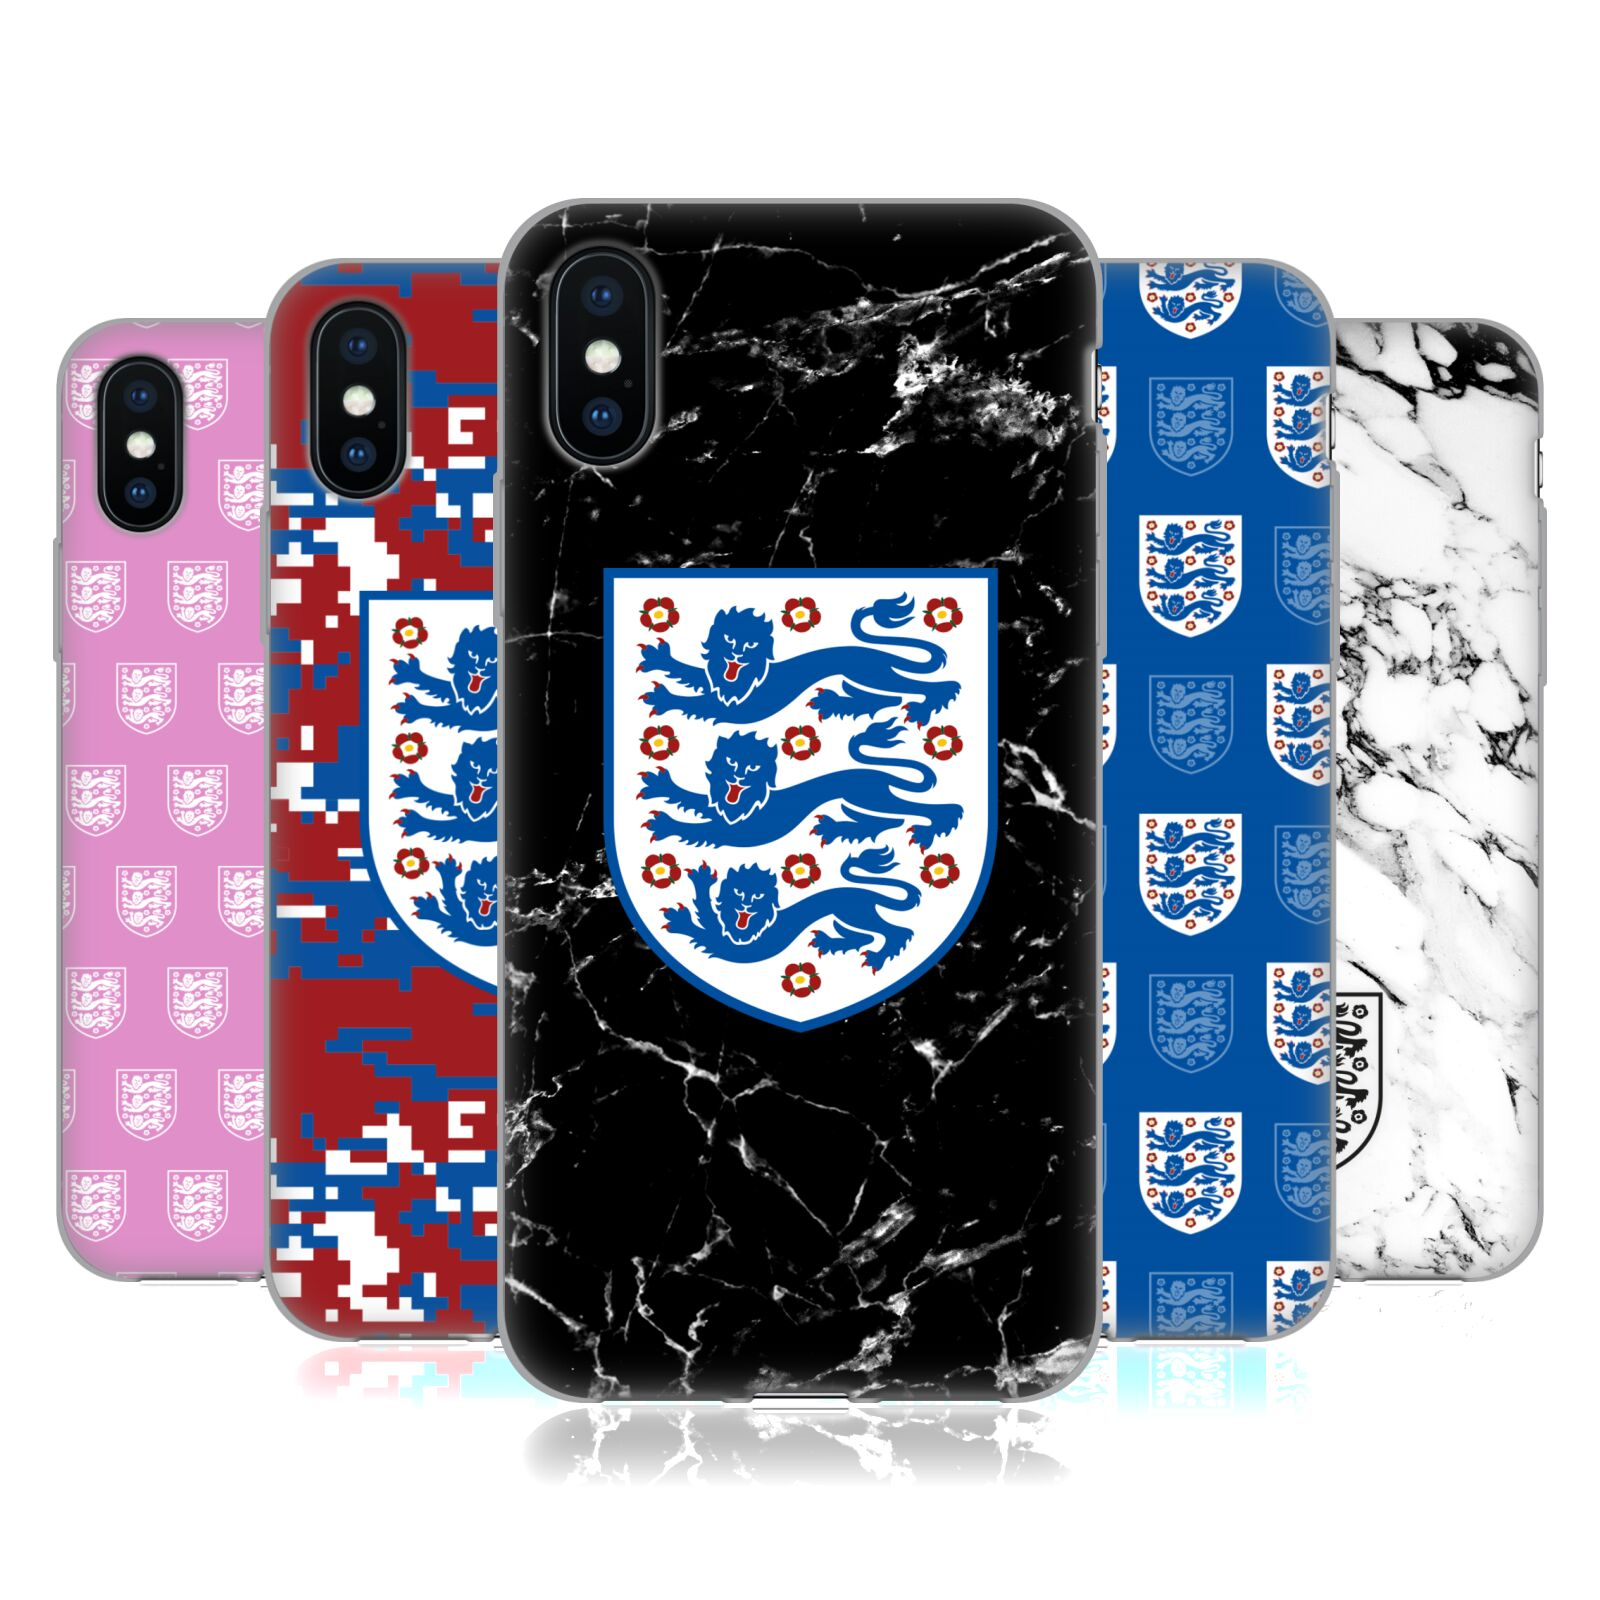 England National Football Team <!--translate-lineup-->2018 Crest And Patterns<!--translate-lineup-->